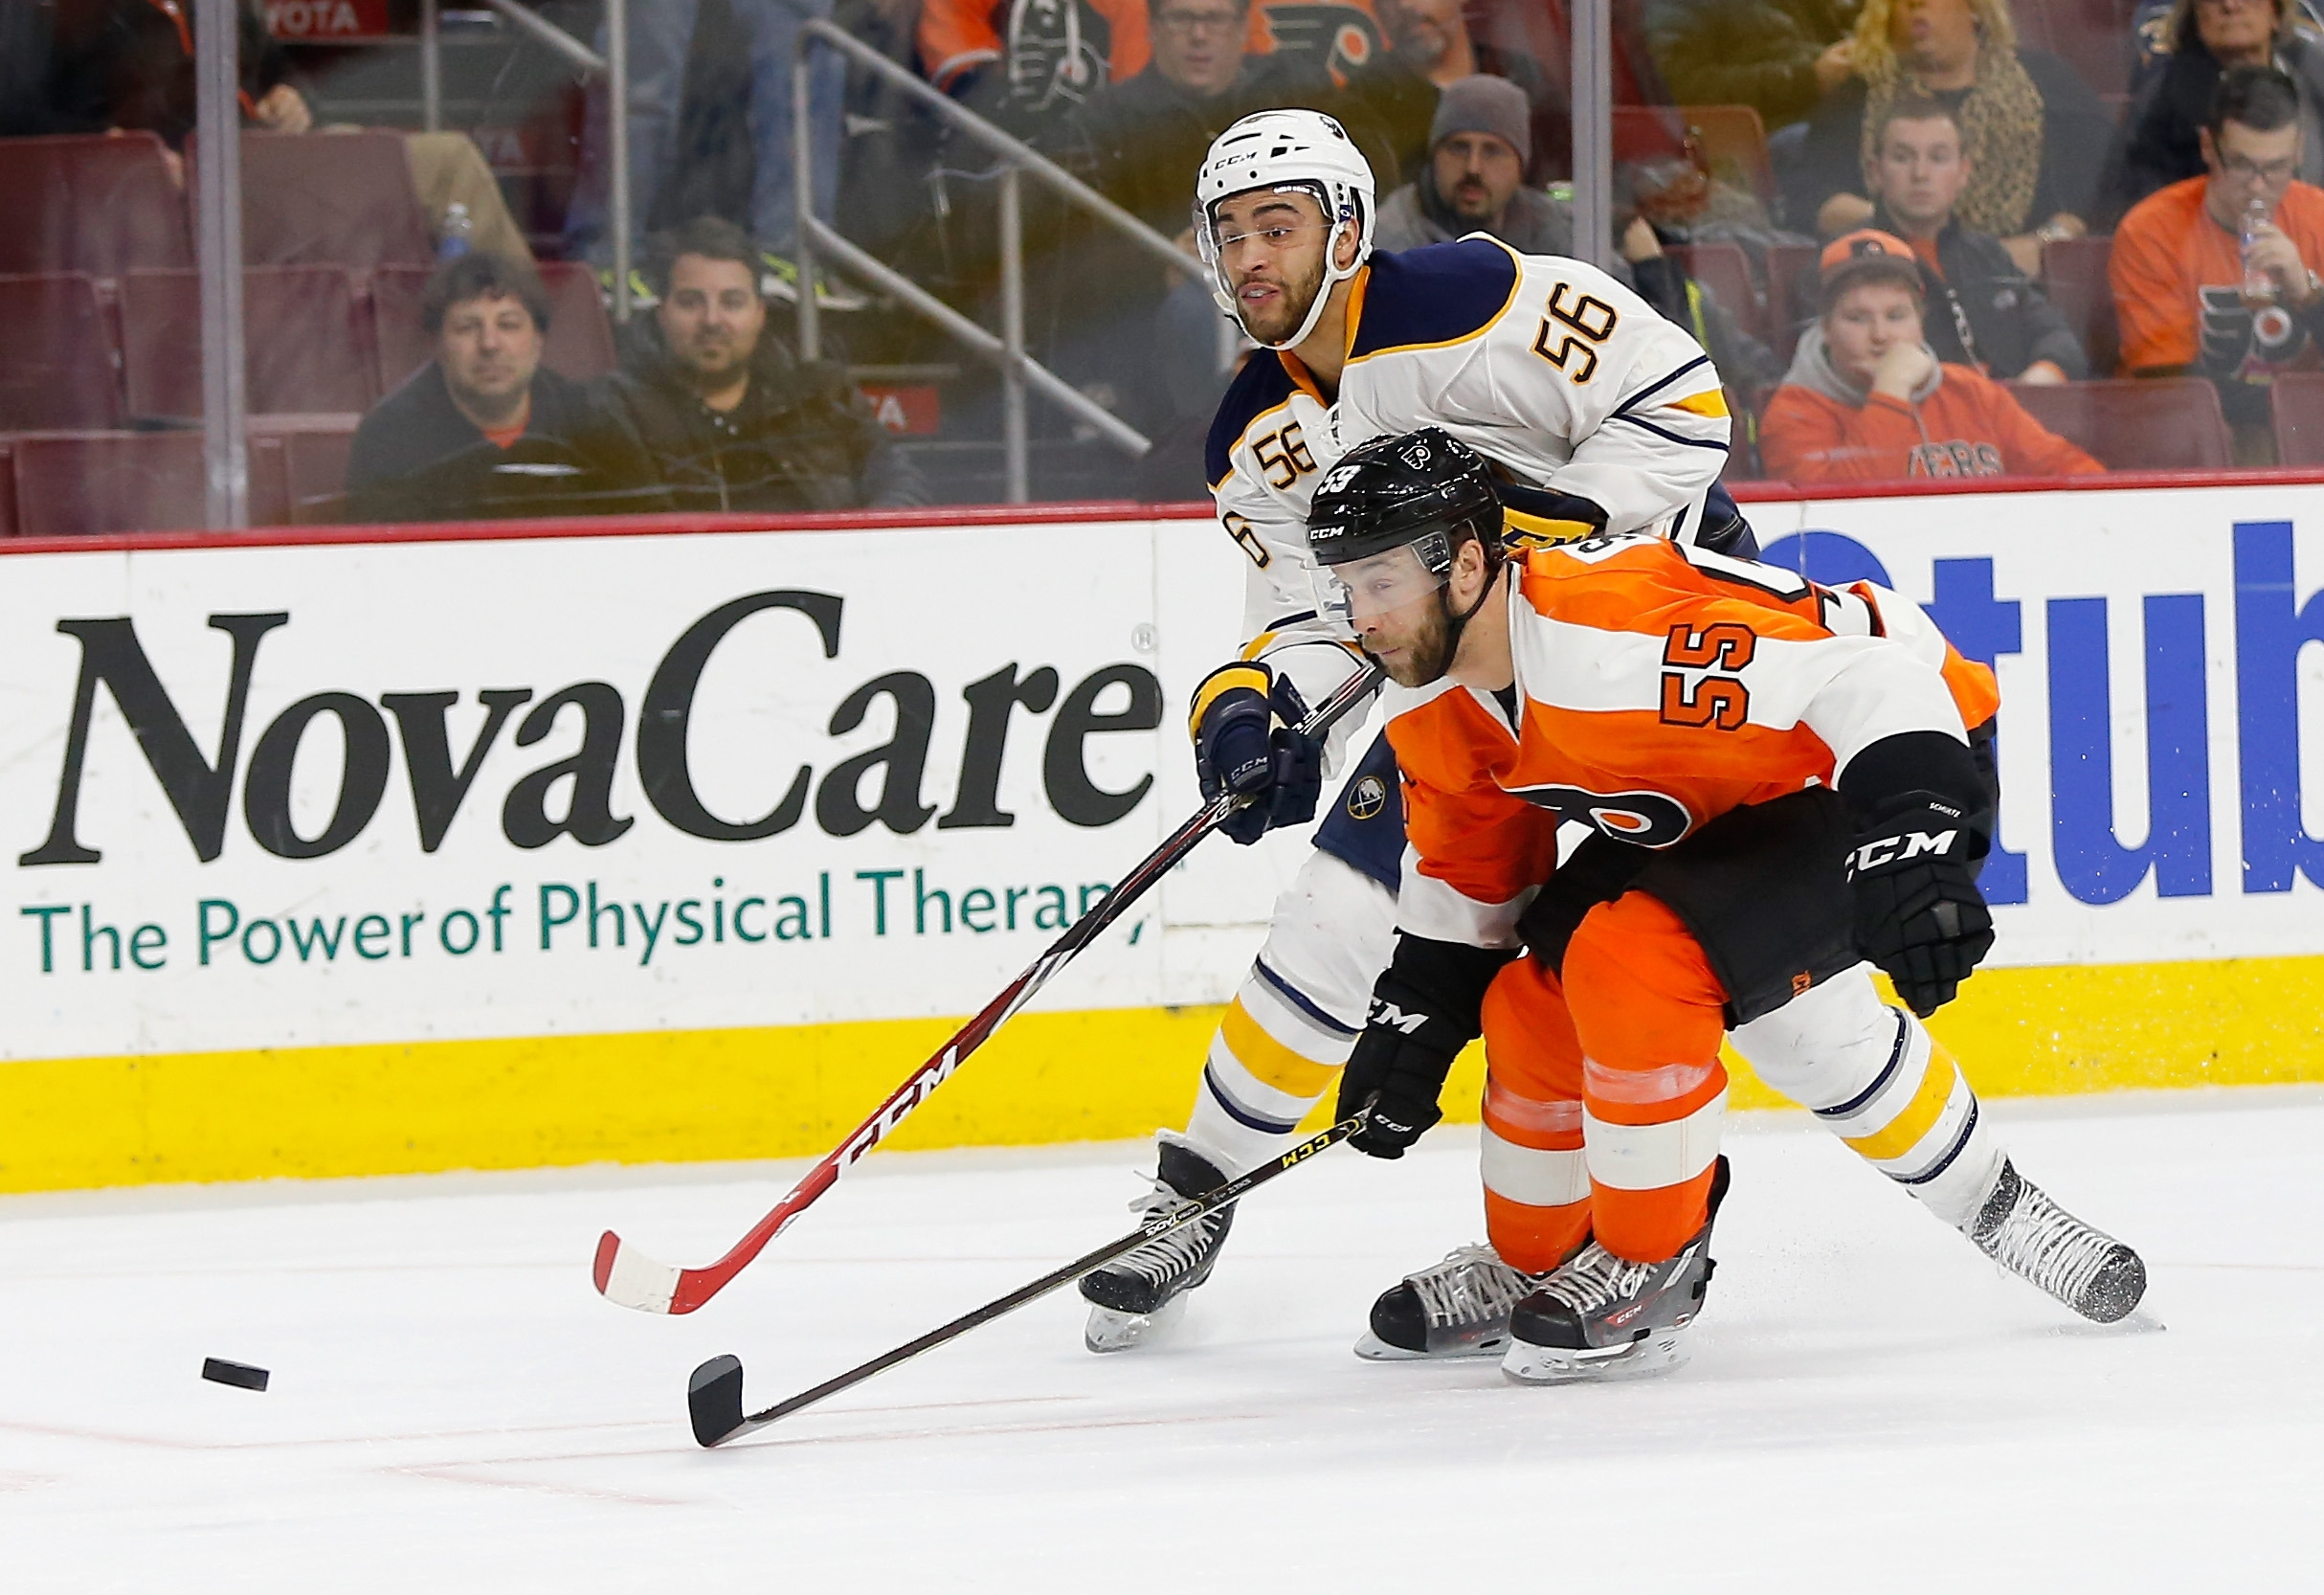 Williamsville native Justin Bailey played his first game as a Sabre on Thursday against Nick Schultz and the Philadelphia Flyers.